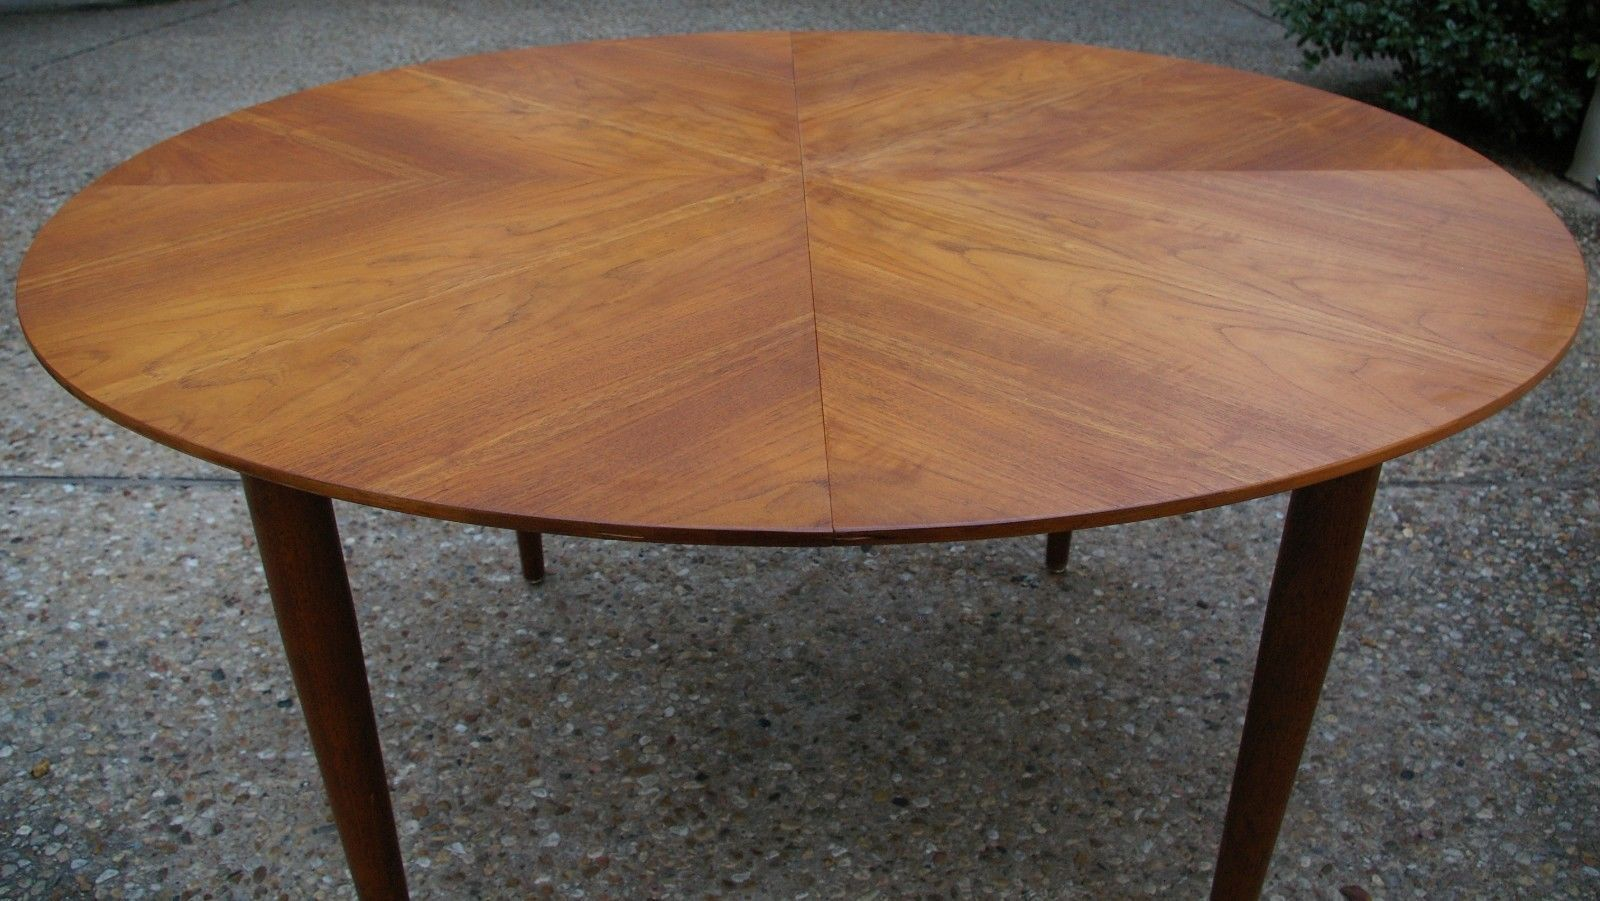 This Oval Shaped Dining Table Is Made Of European Walnut With A